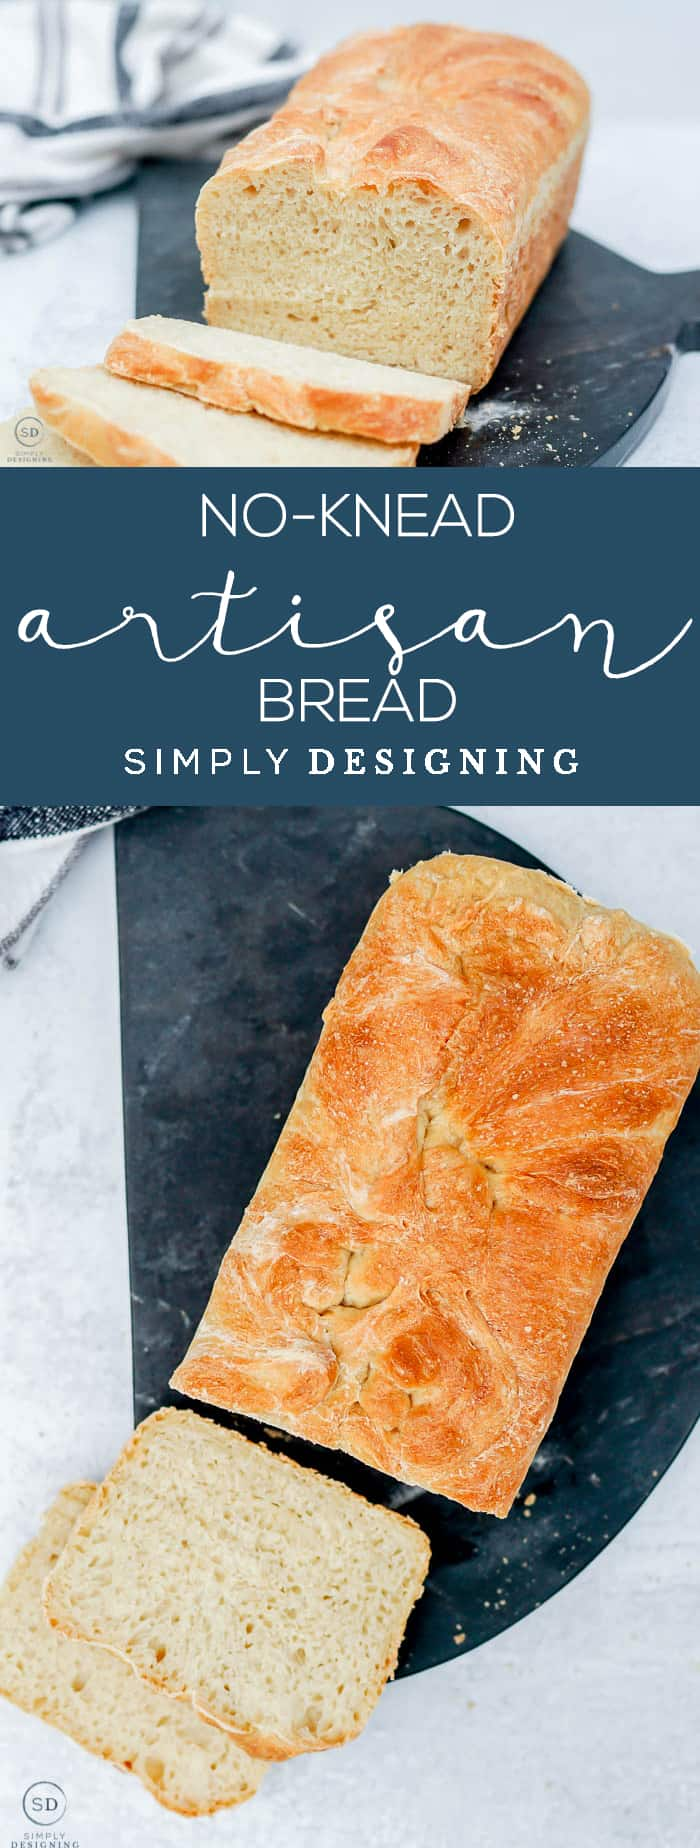 No-Knead Artisan Bread Recipe